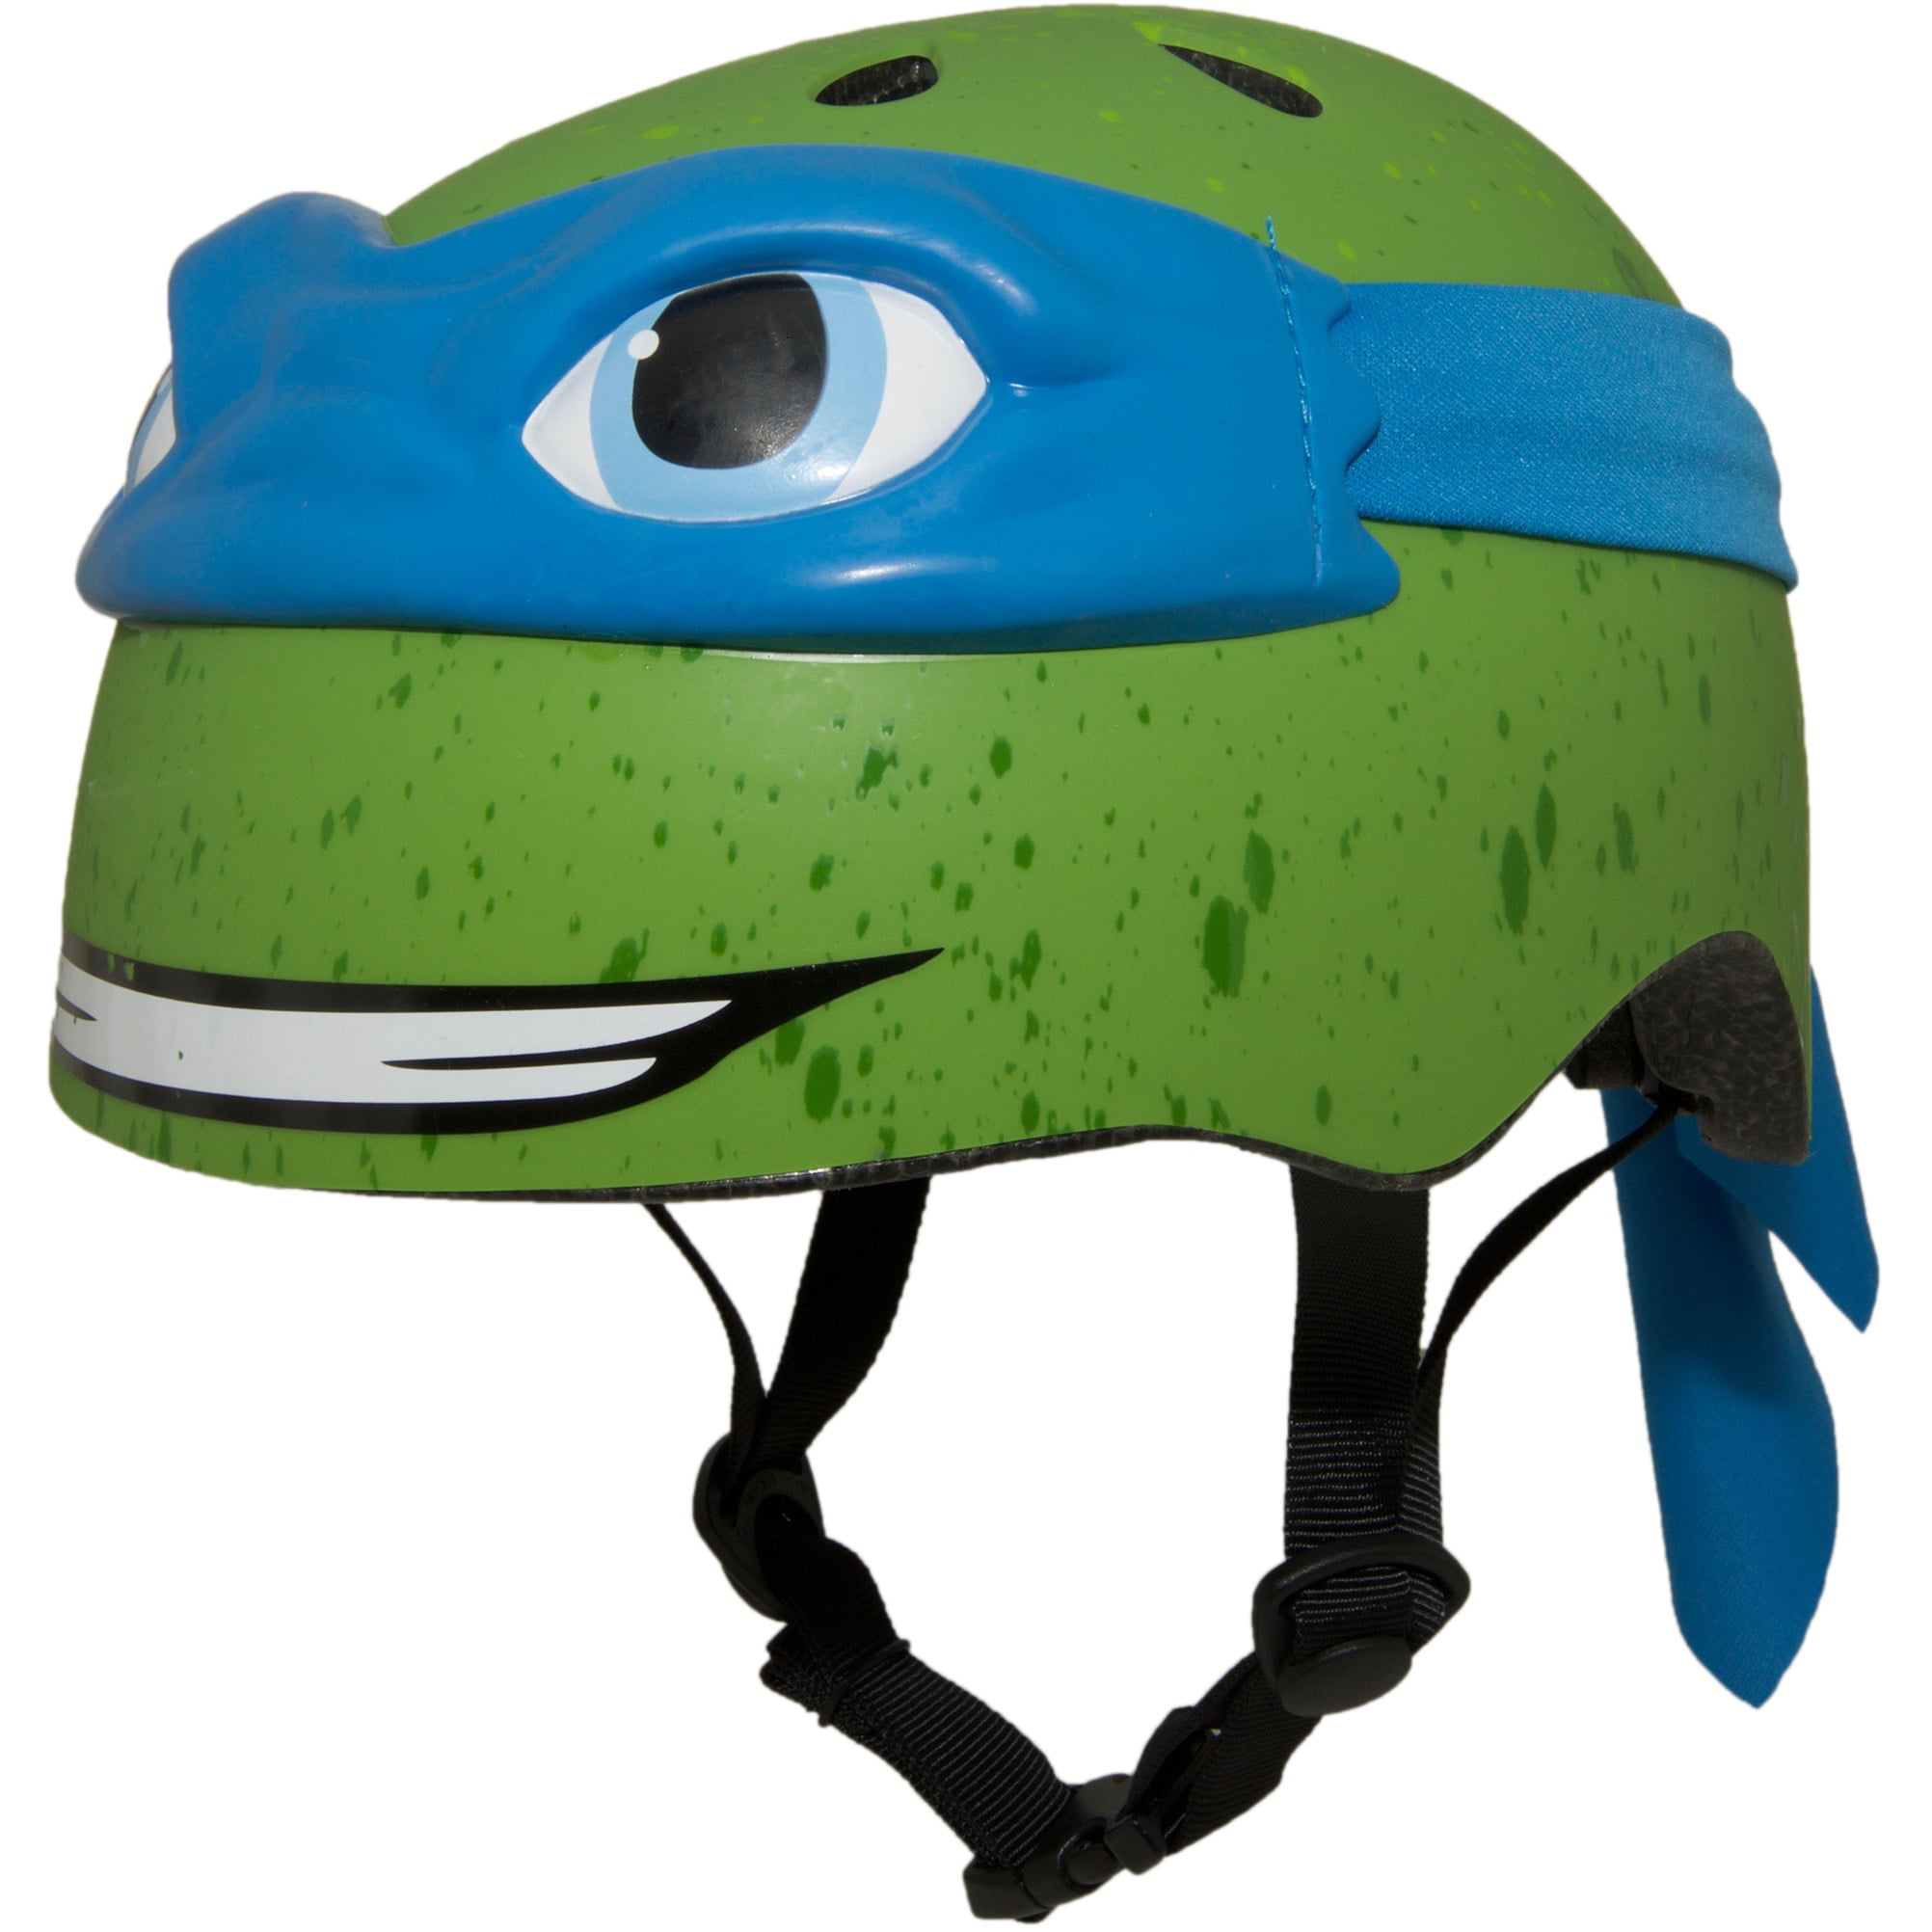 Nickelodeon Teenage Mutant Ninja Turtles Leonardo 3D Bike Helmet, Child by C-Preme